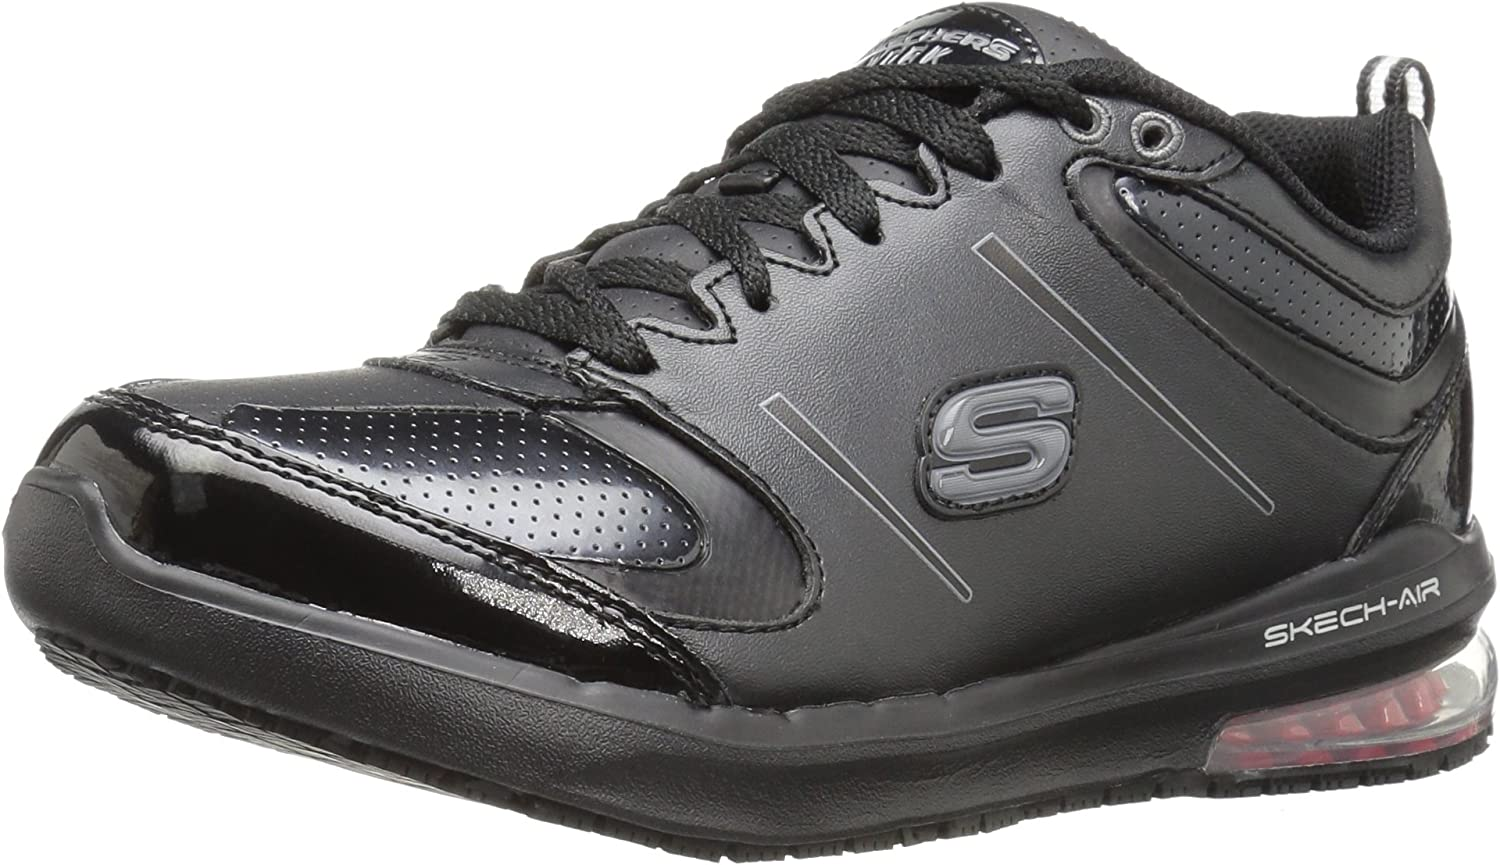 Skechers Work Wohommes Lingle Air Slip Resistant chaussures